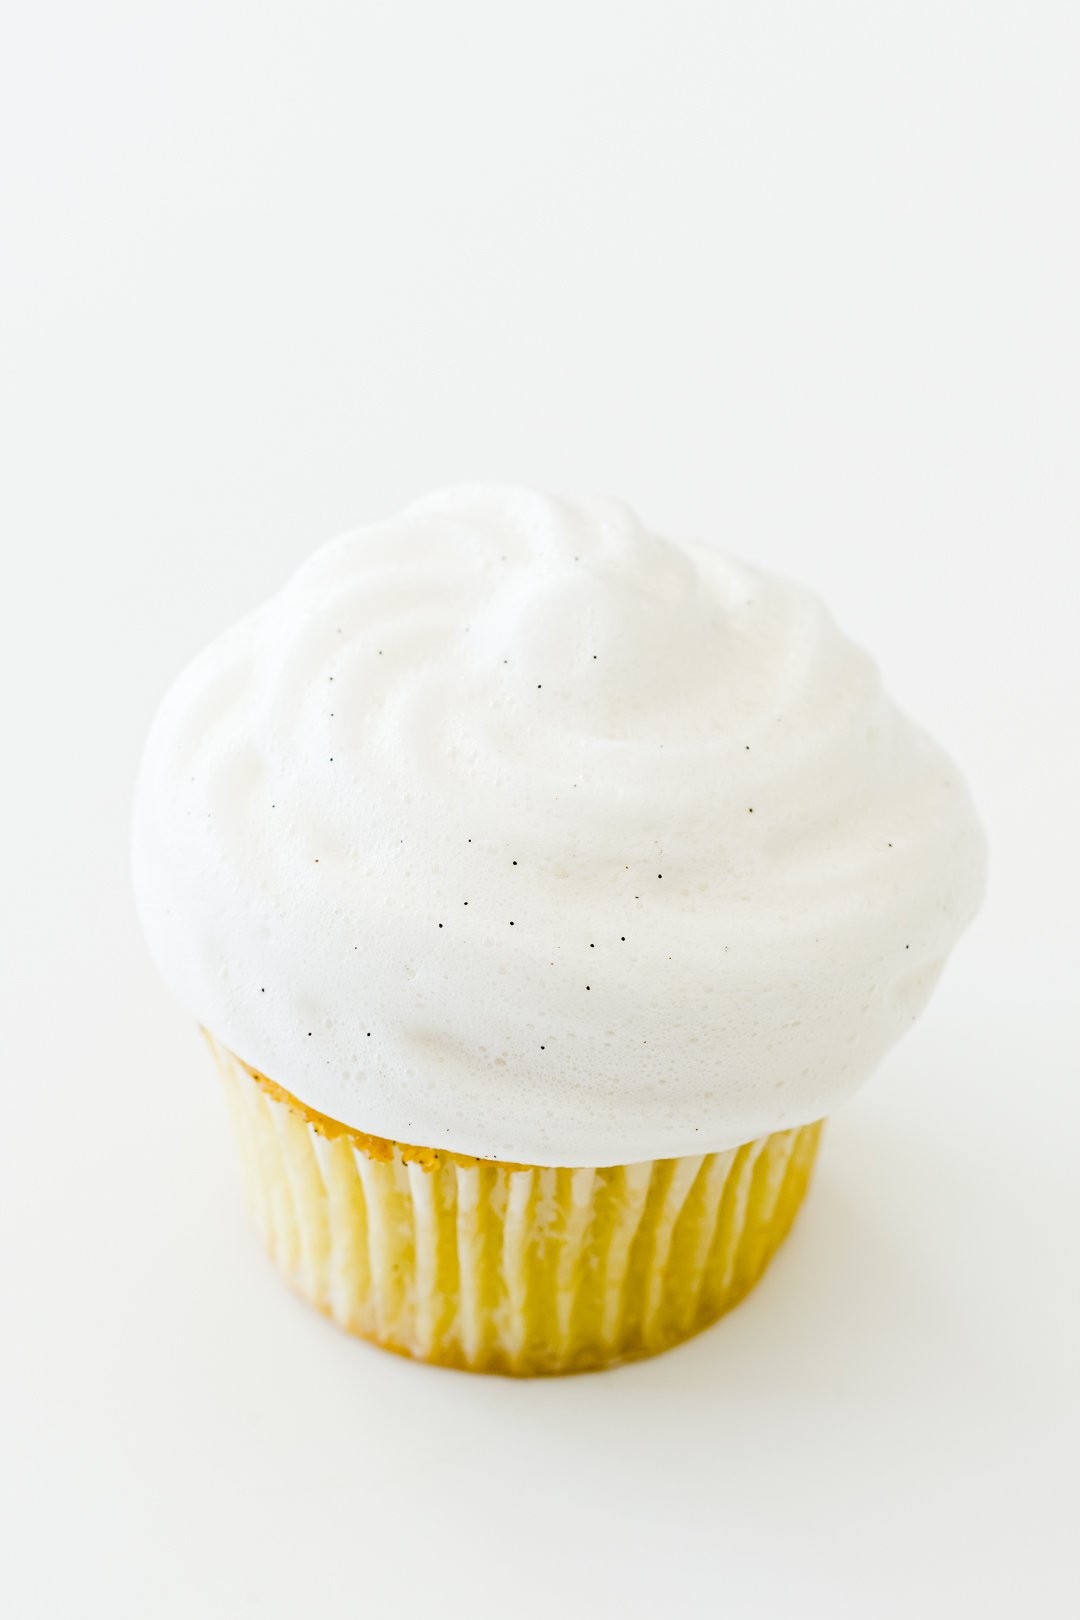 Aquafaba meringue on a cupcake without torching